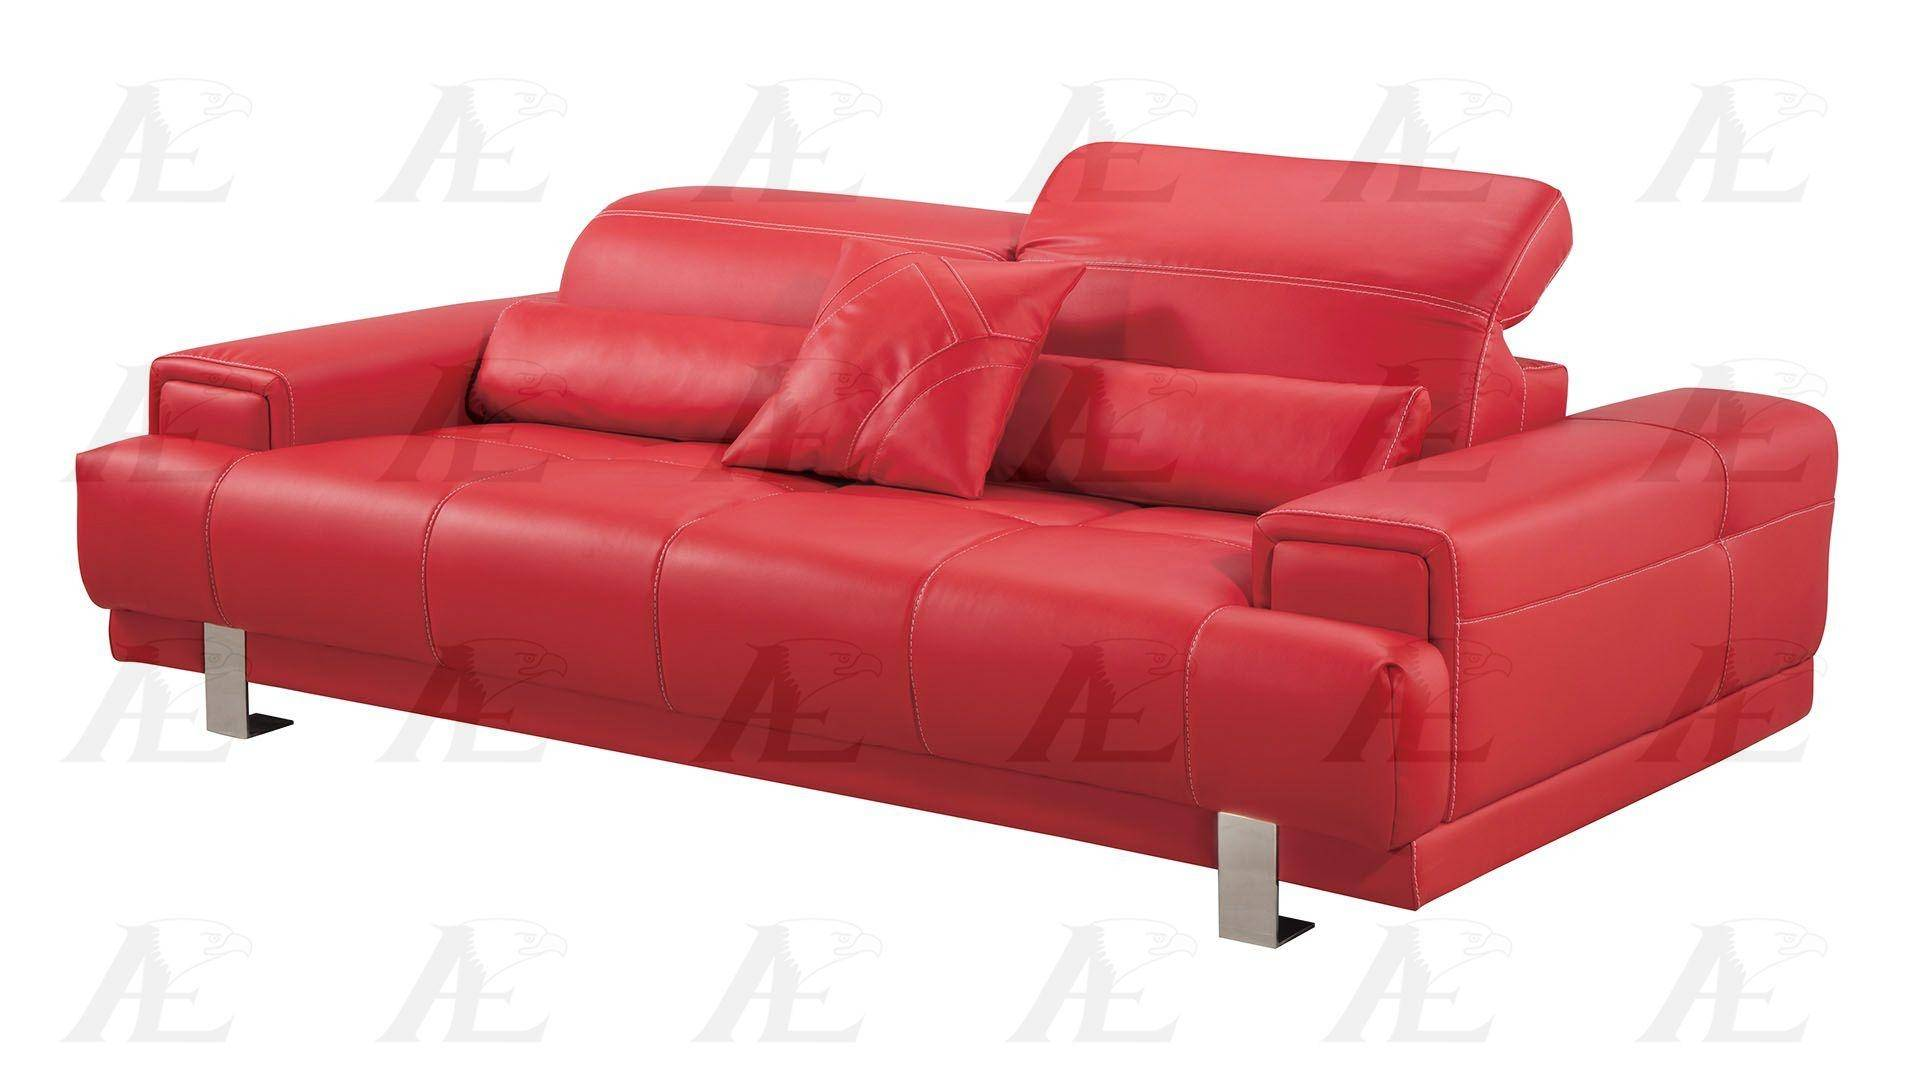 Pleasant American Eagle Furniture Ae606 Red Sofa Faux Leather Modern Evergreenethics Interior Chair Design Evergreenethicsorg